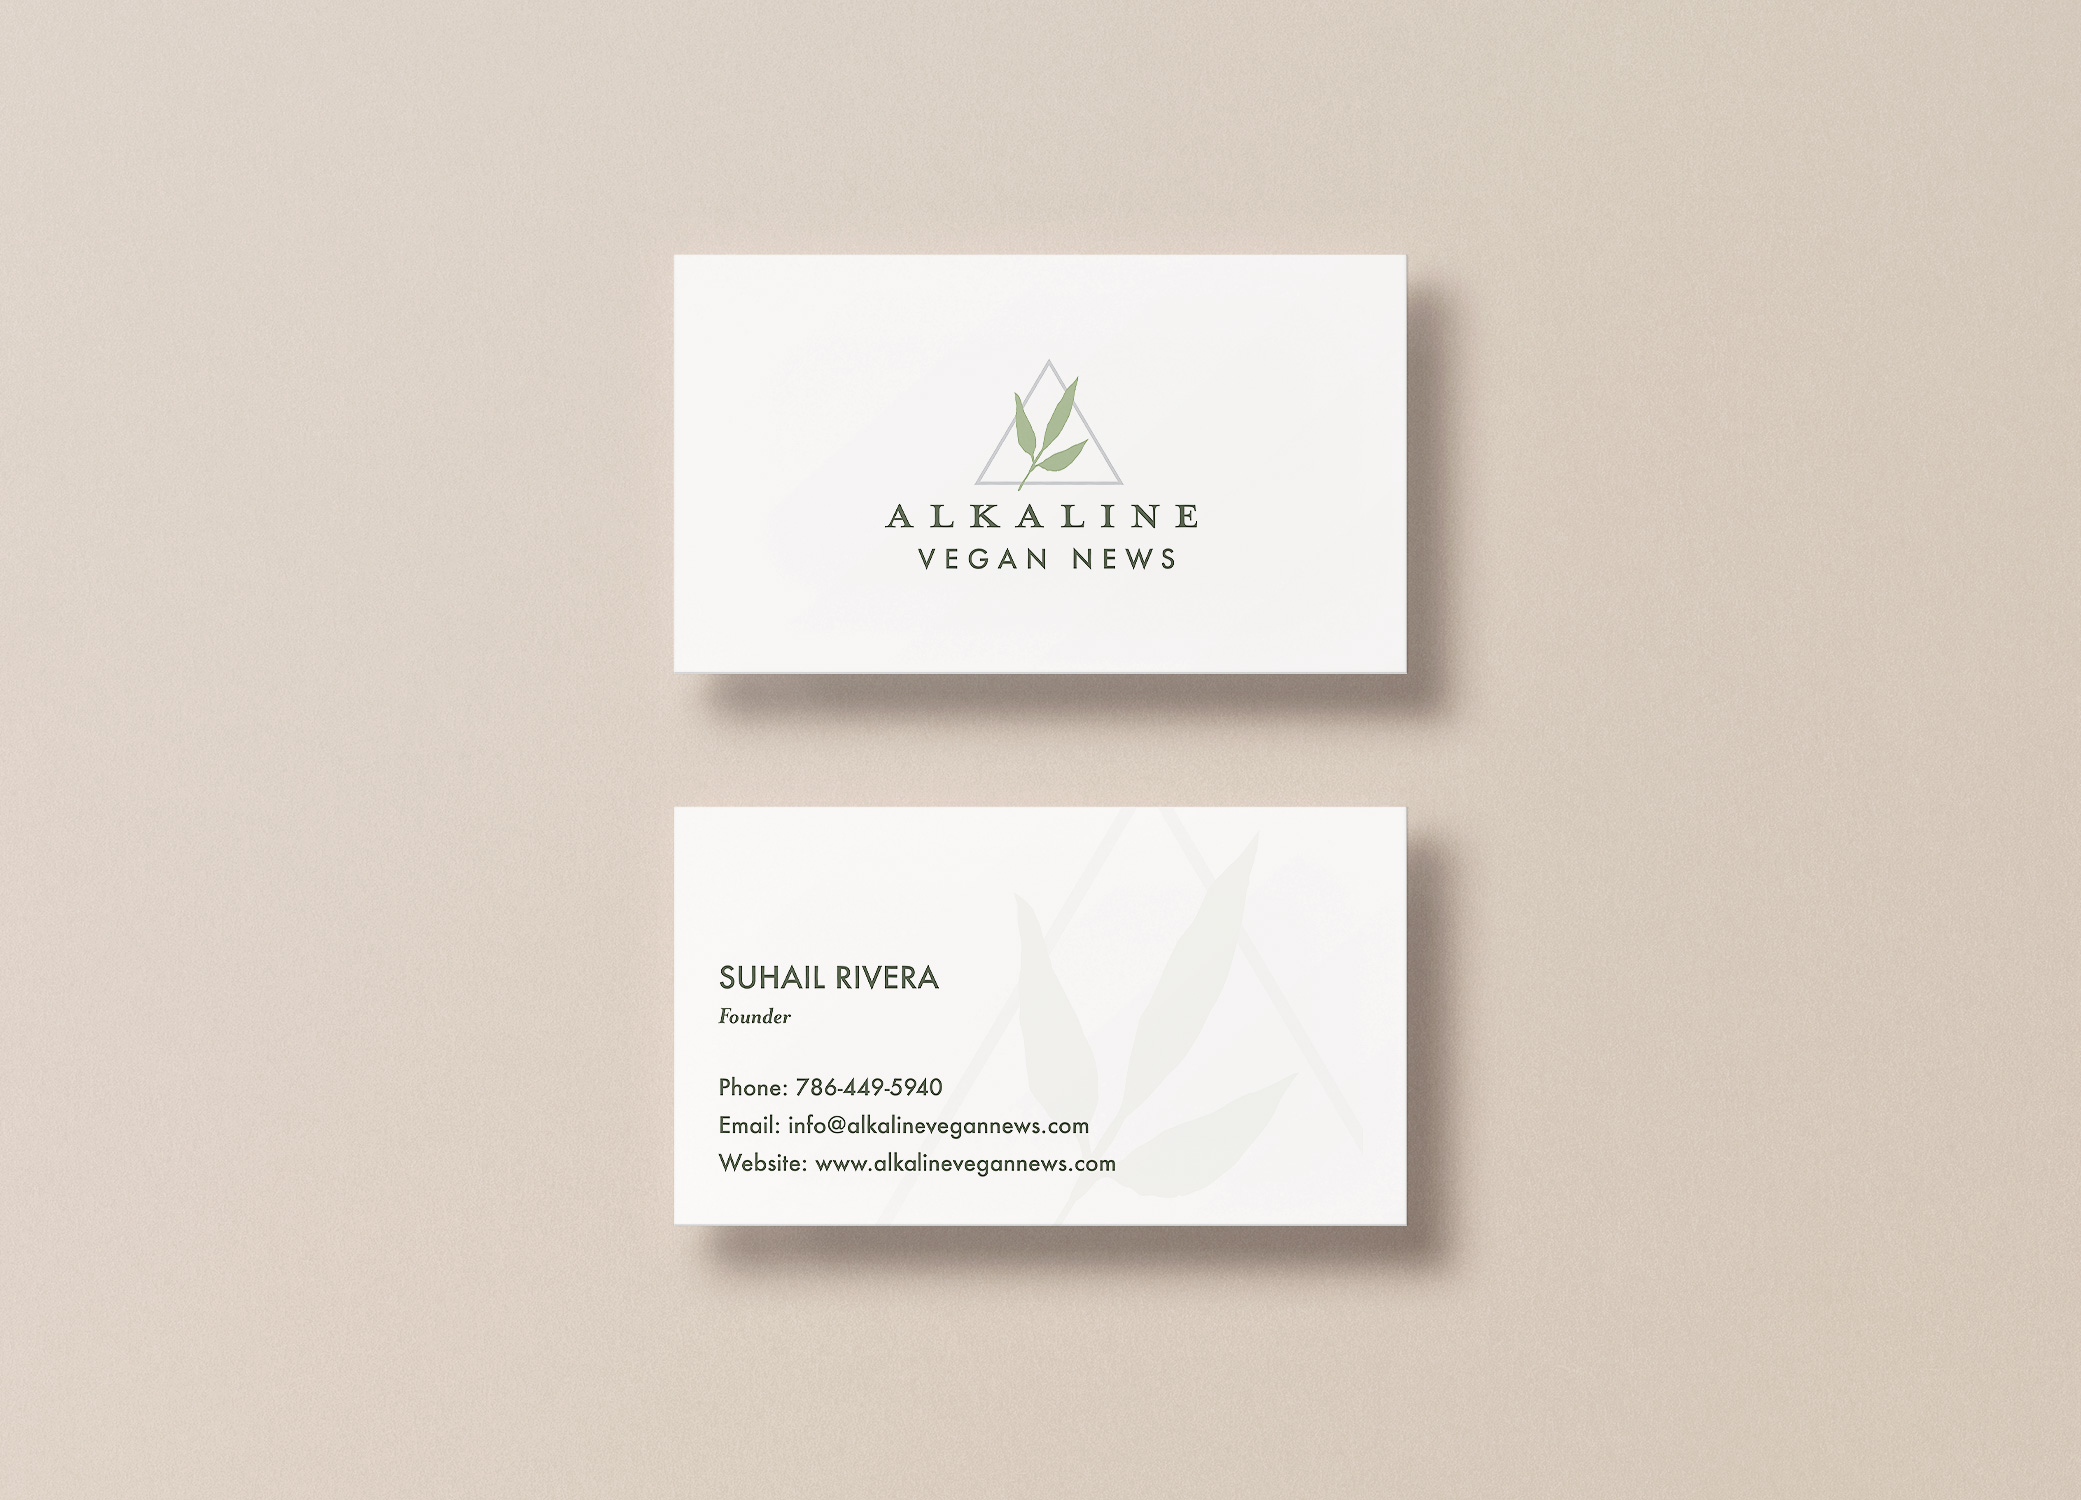 Alkaline Vegan News business cards arranged in stacks to show front and back view against a light beige backdrop.